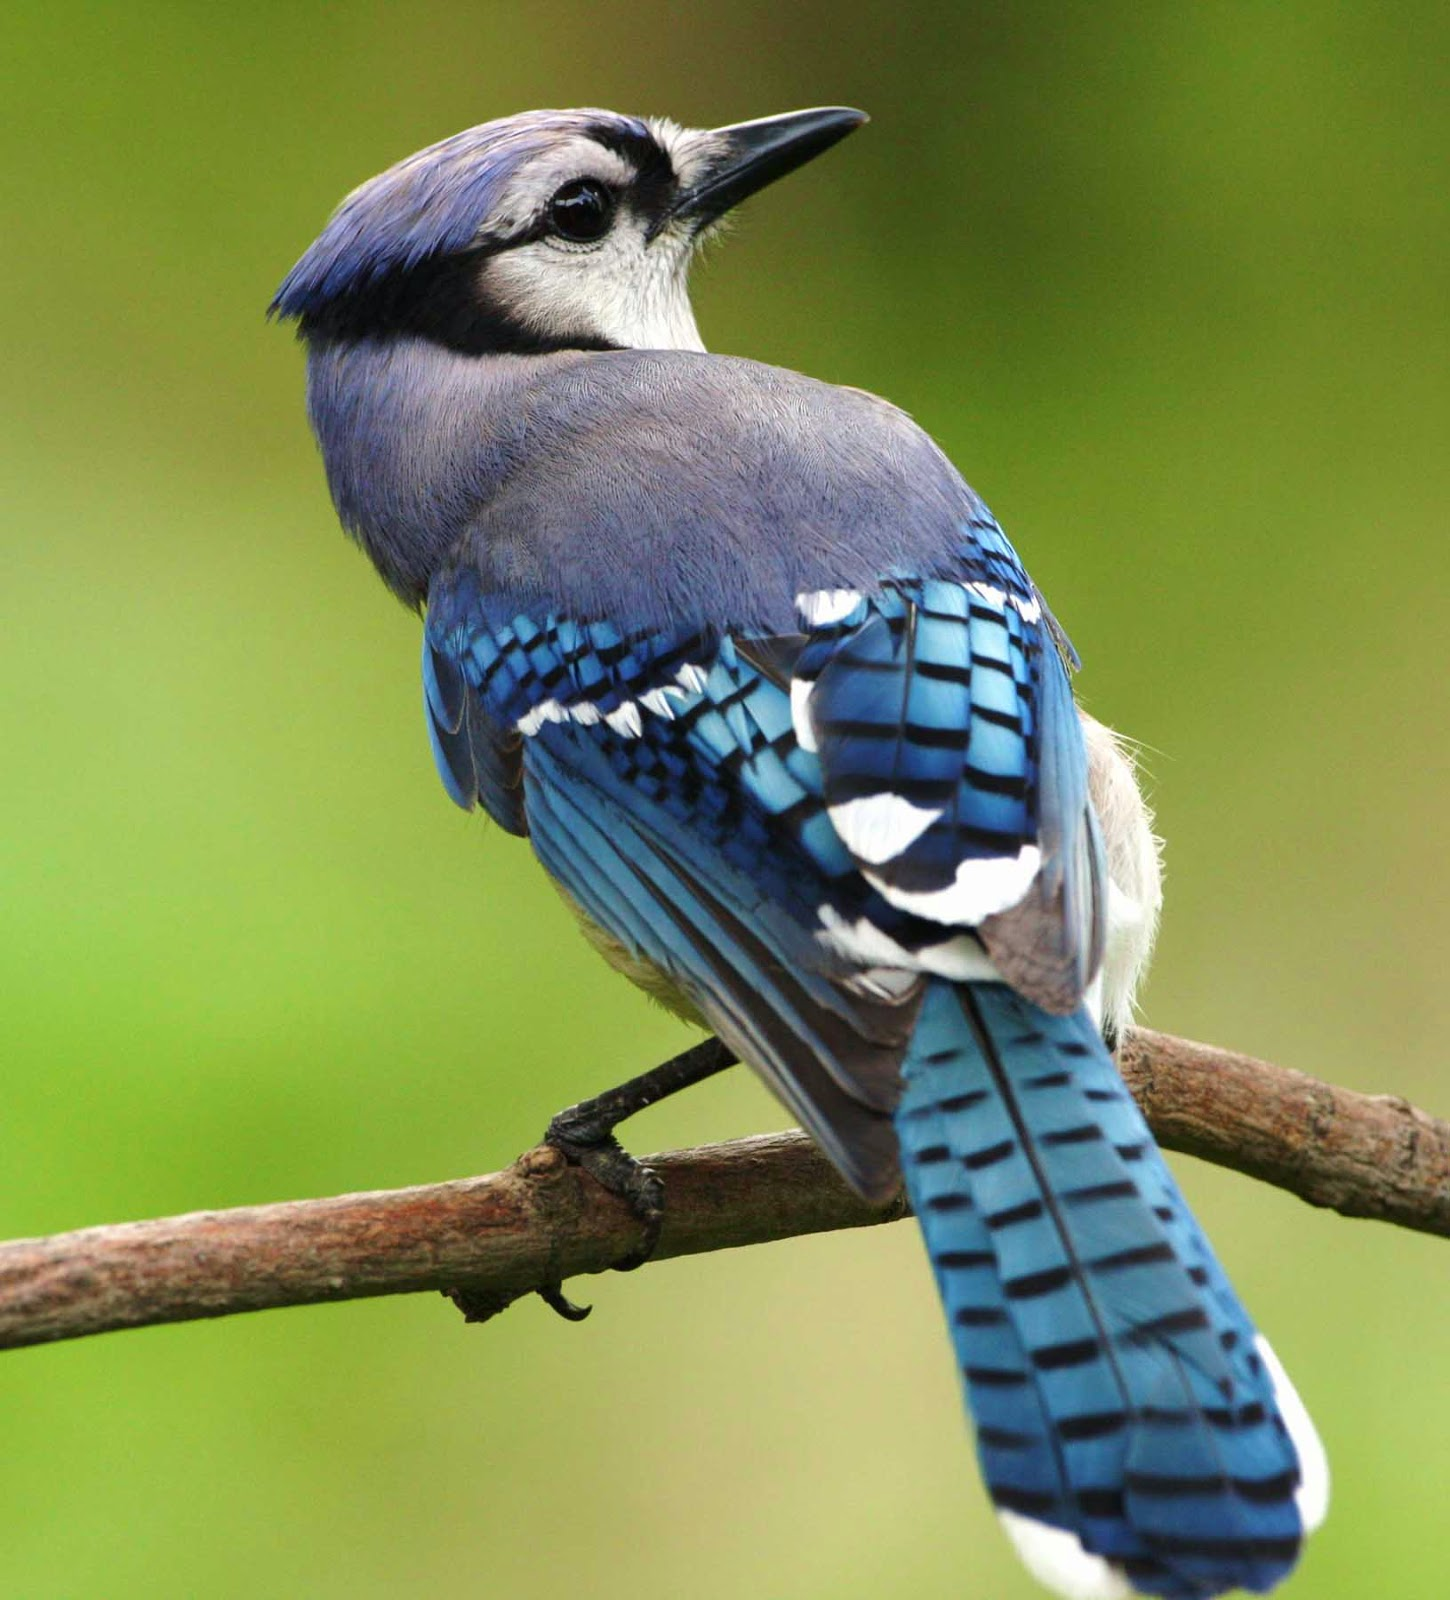 Wild Birds Unlimited: A Closer Look At The Blue Jay